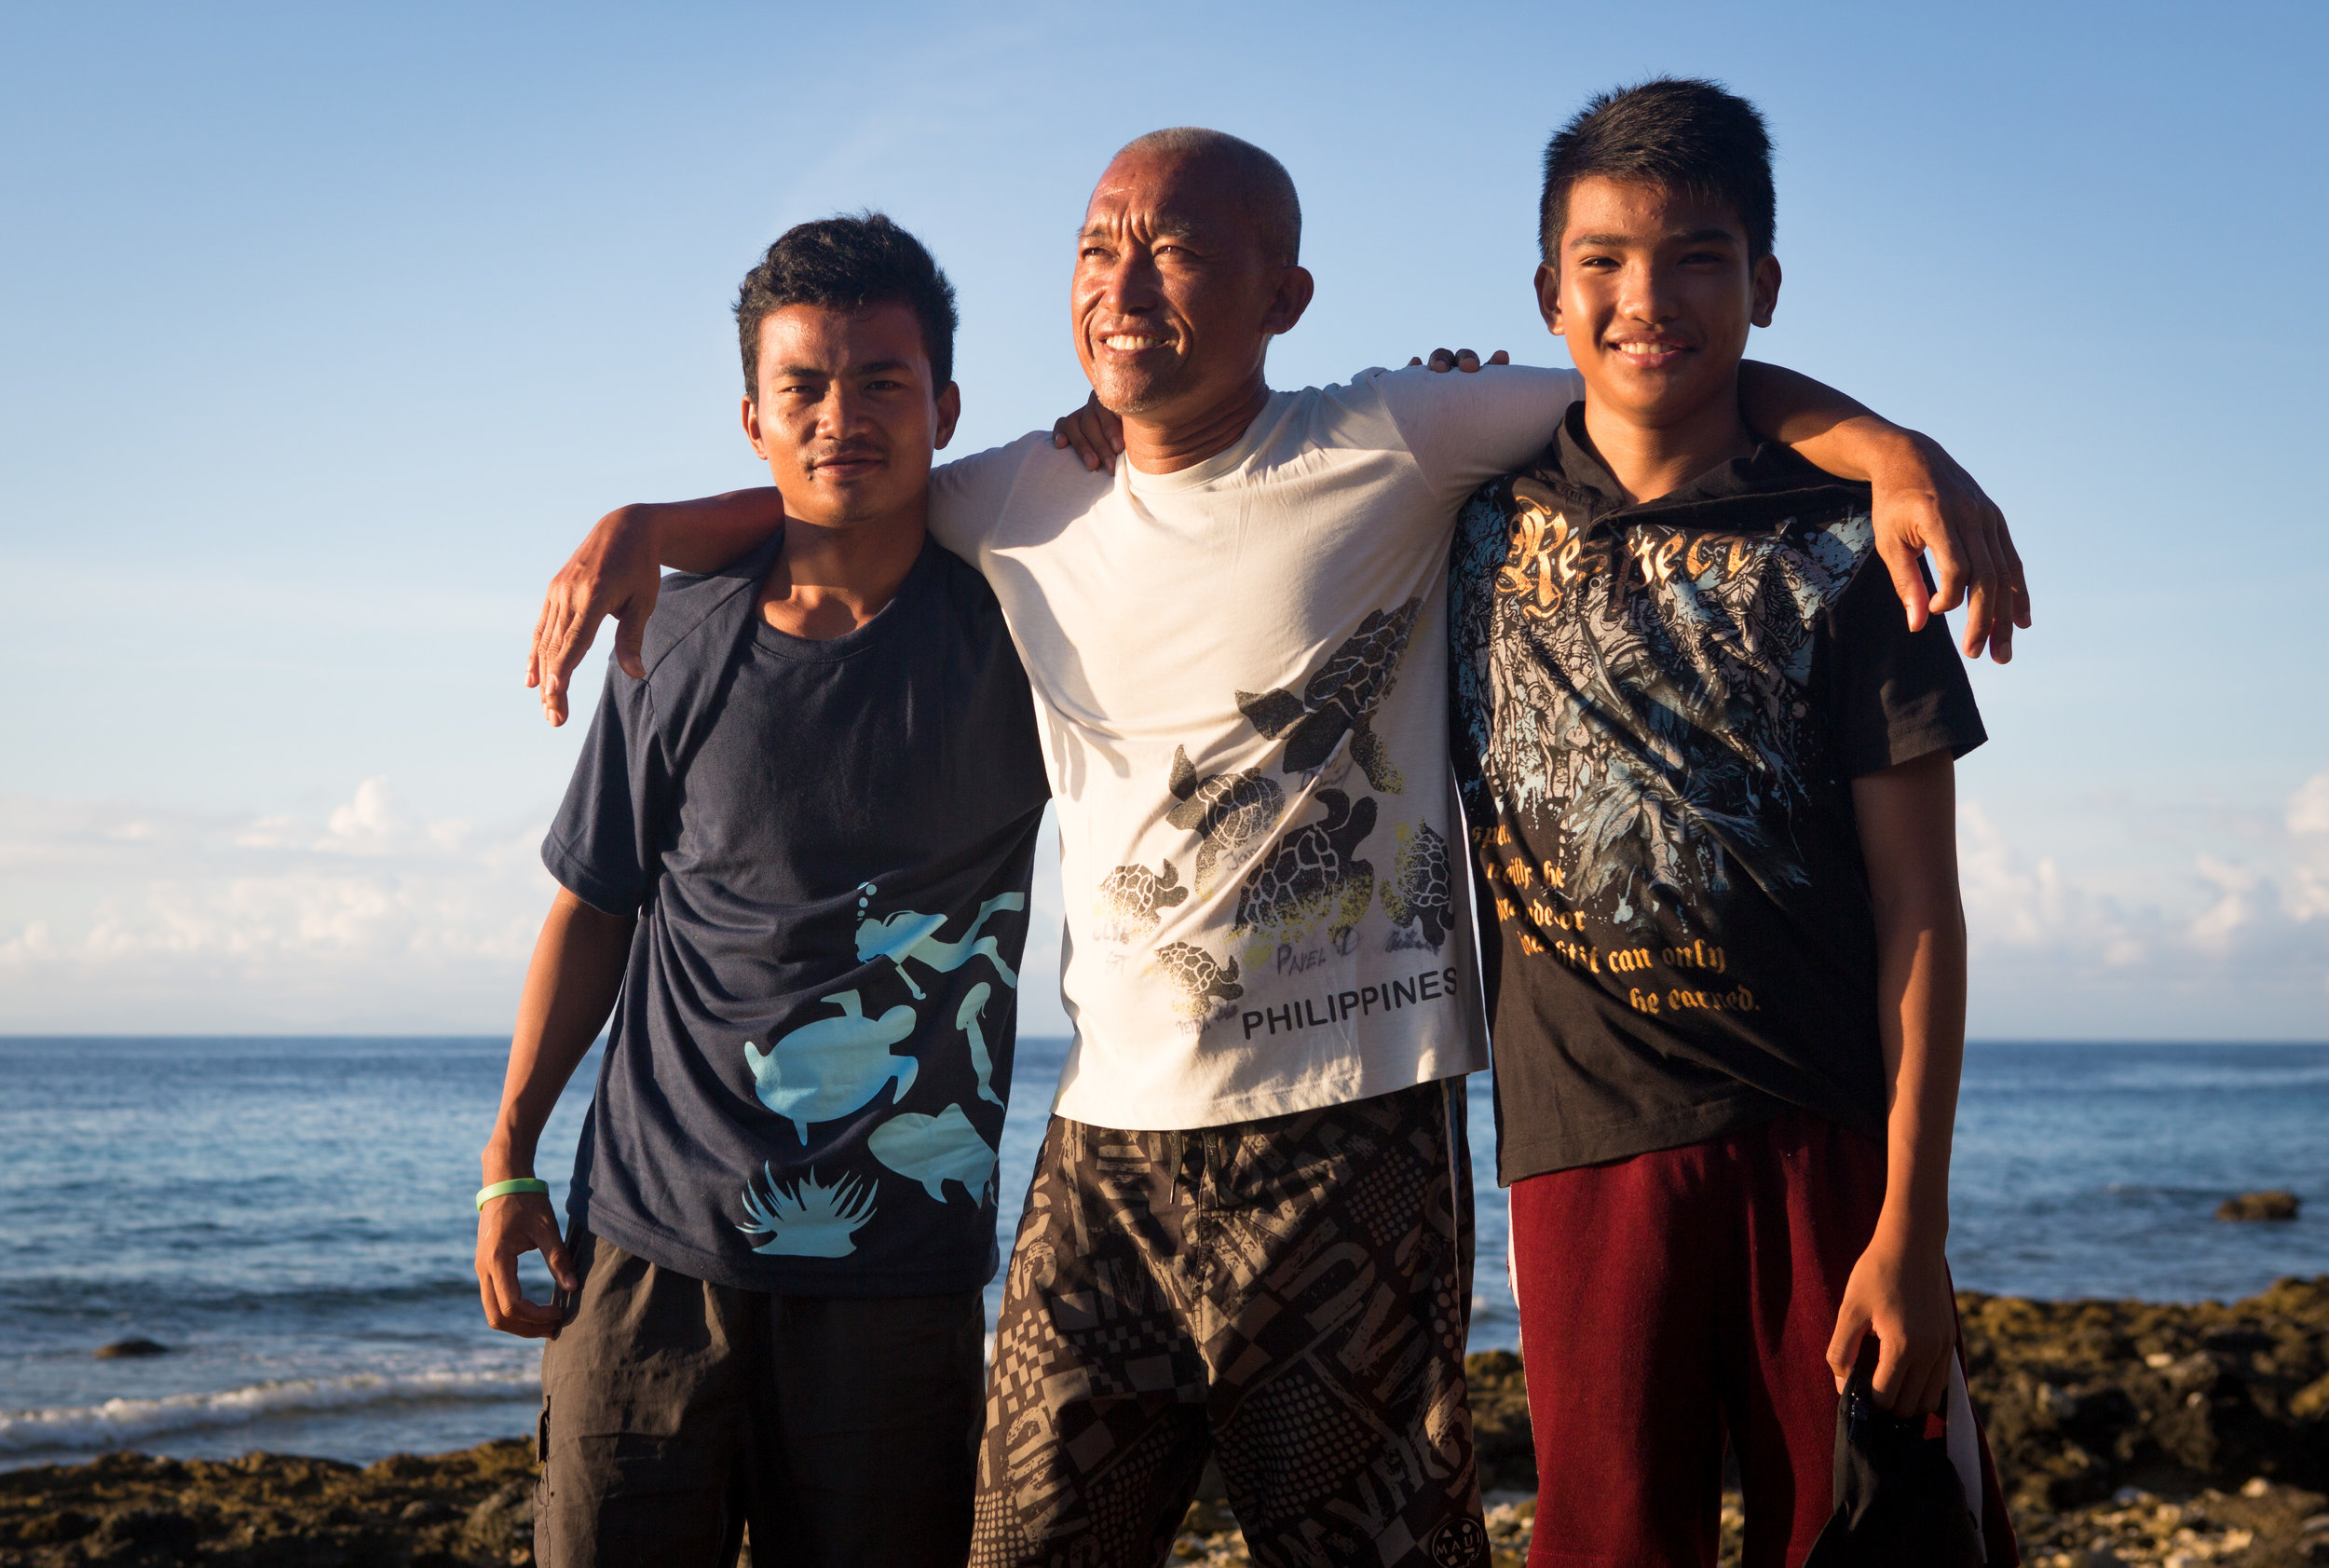 Jerome with his mentor, Mario, and Mario's son Angelo - the day after his graduation, April 2017. (Angelo graduated as a rescue diver at the same time Jerome graduated as a dive master).